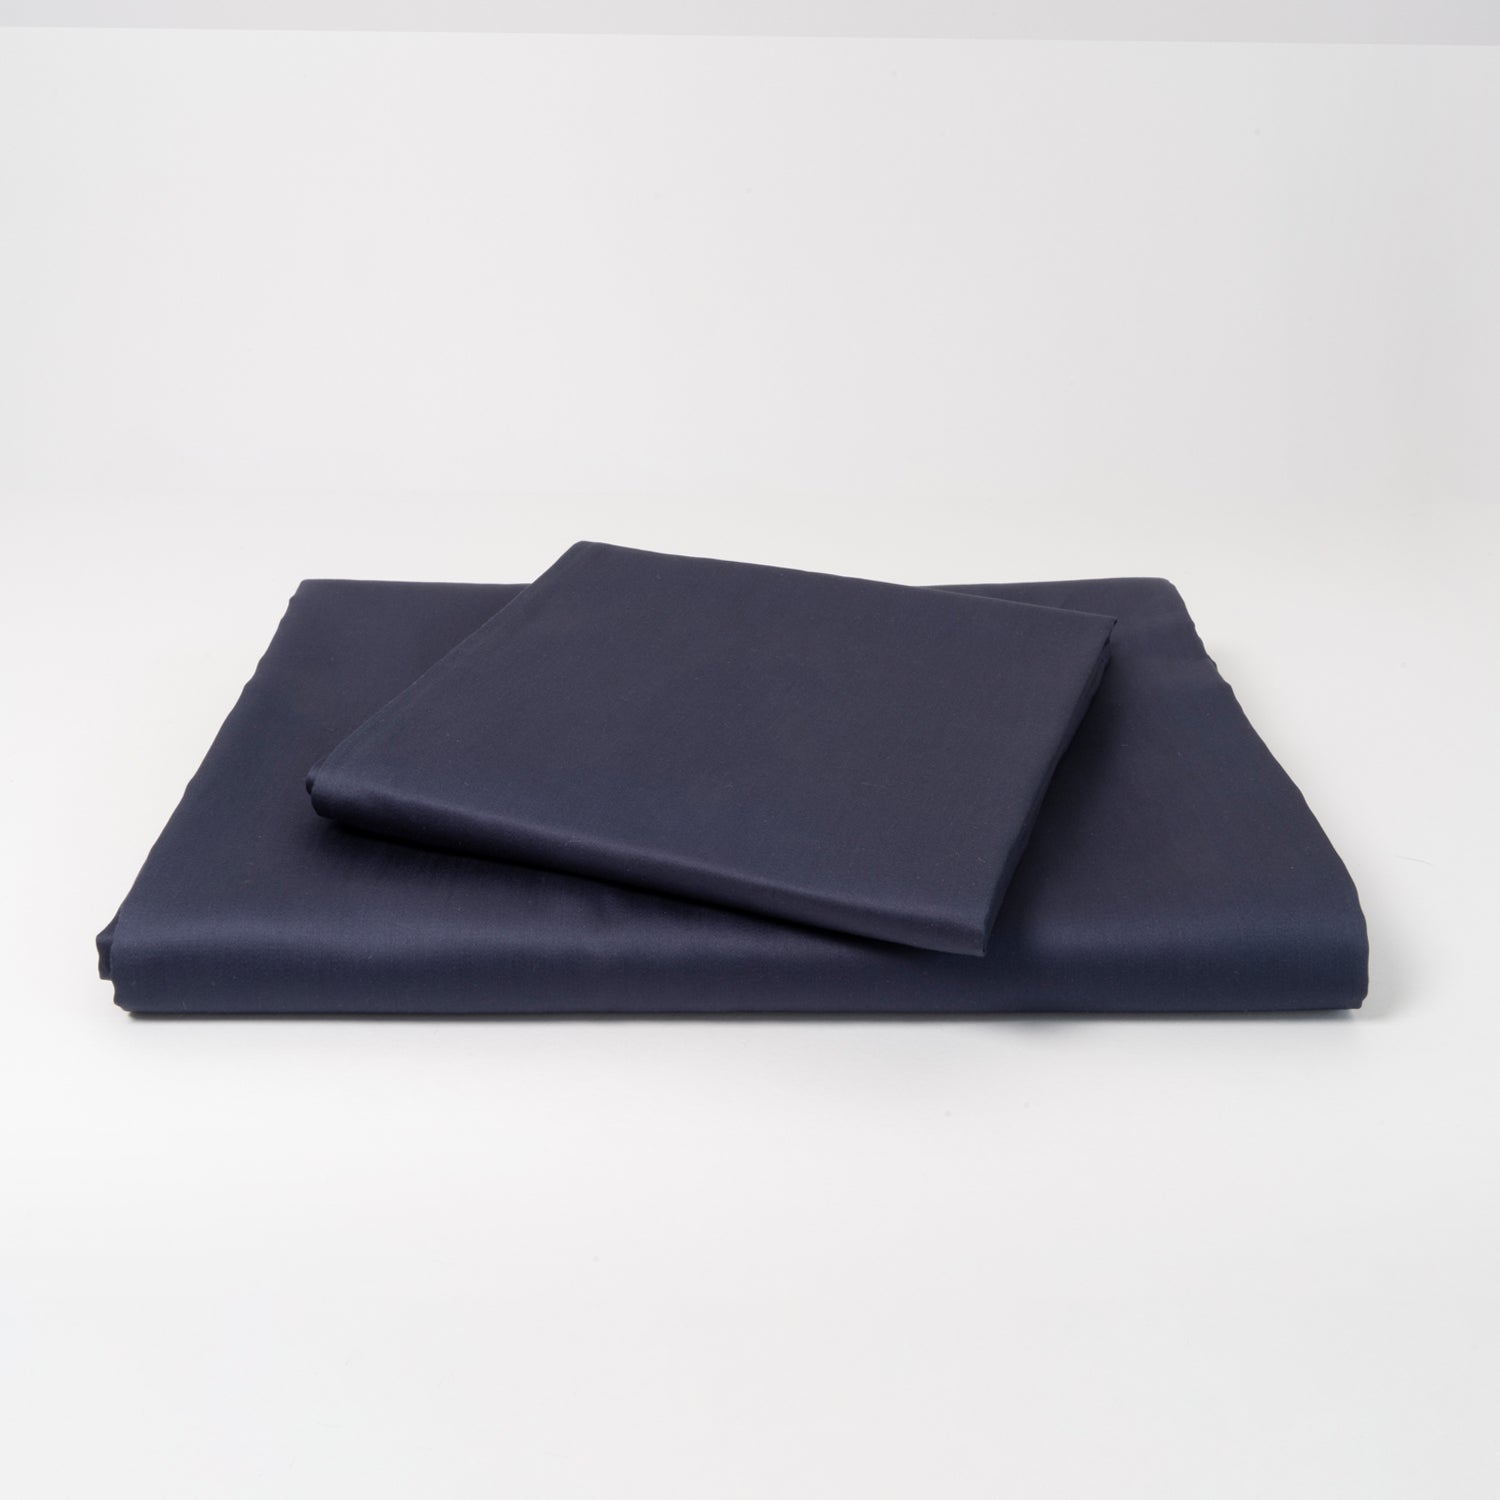 Luxus Bettwäsche Set - Navy Blue